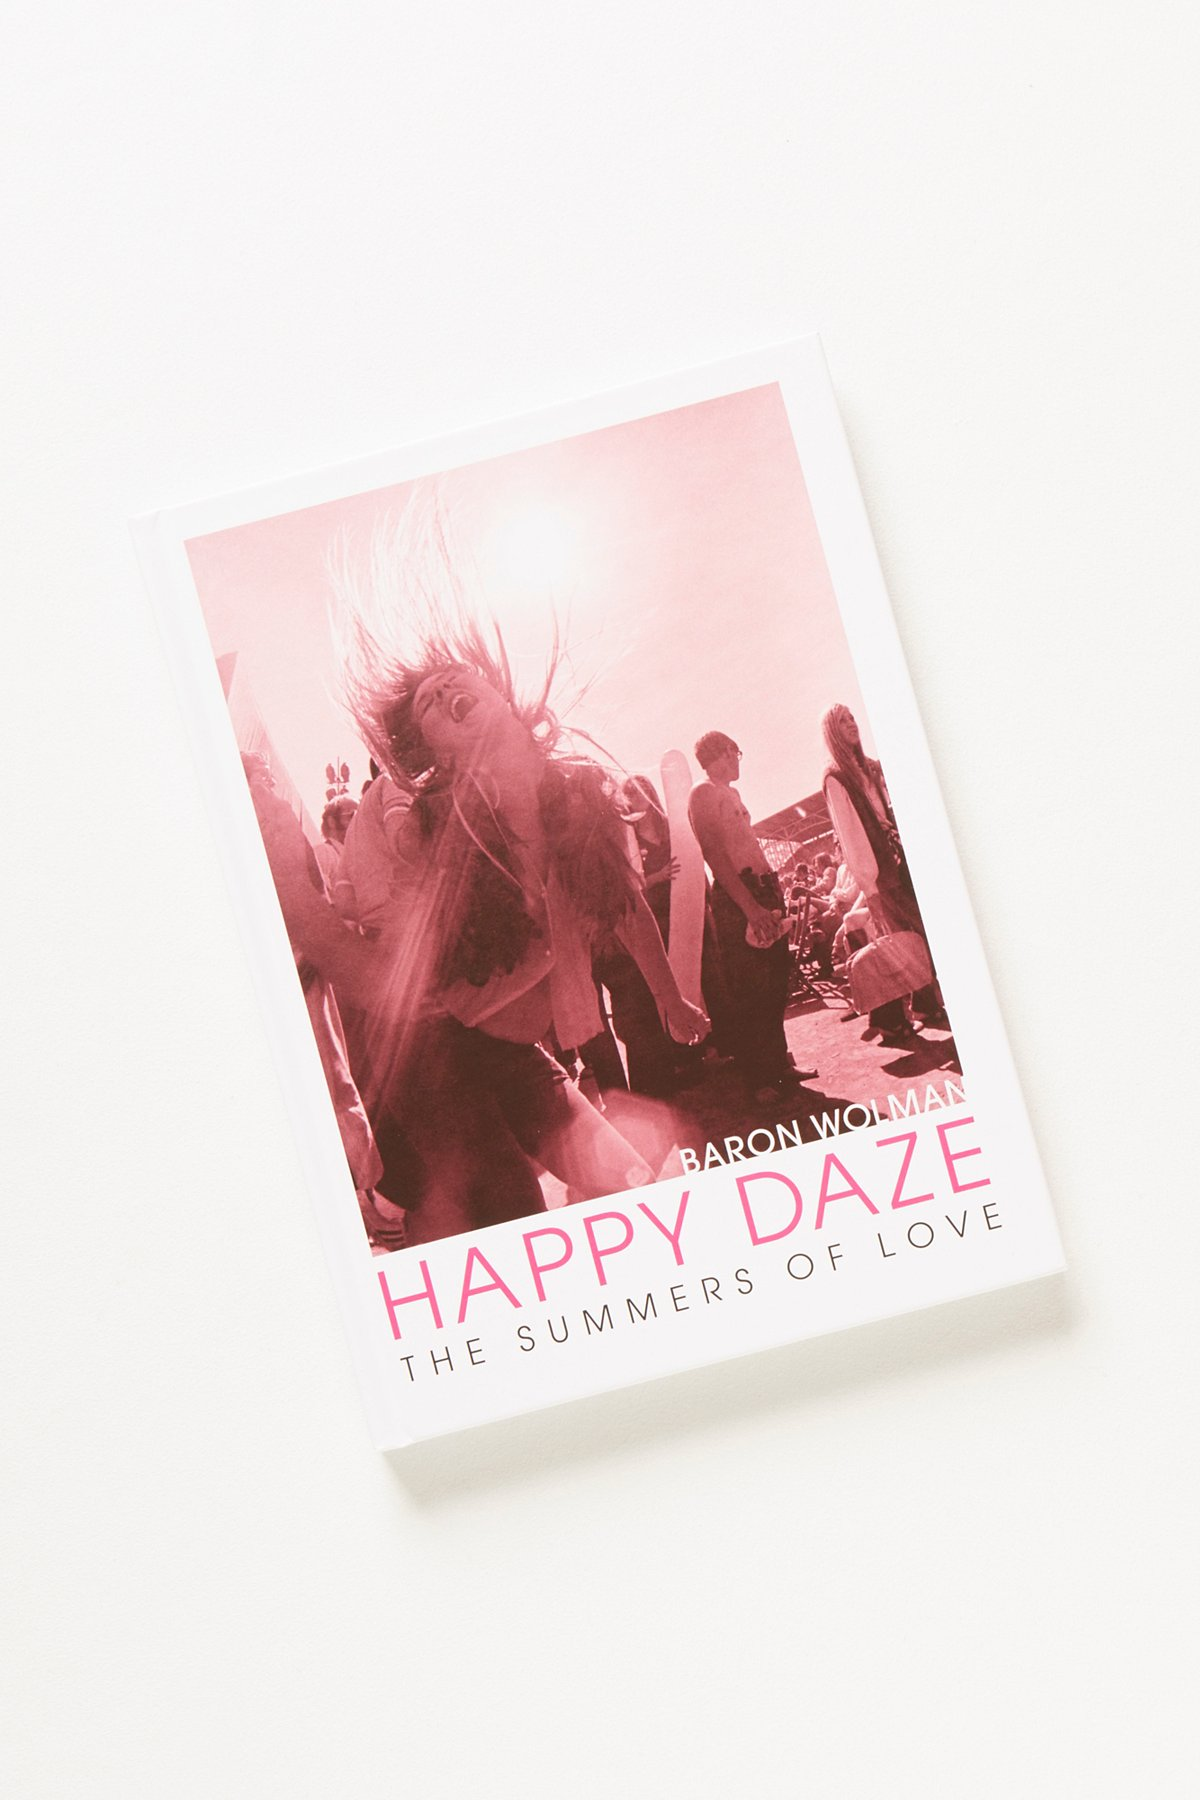 Happy Daze: Summers of Love by Baron Wolman